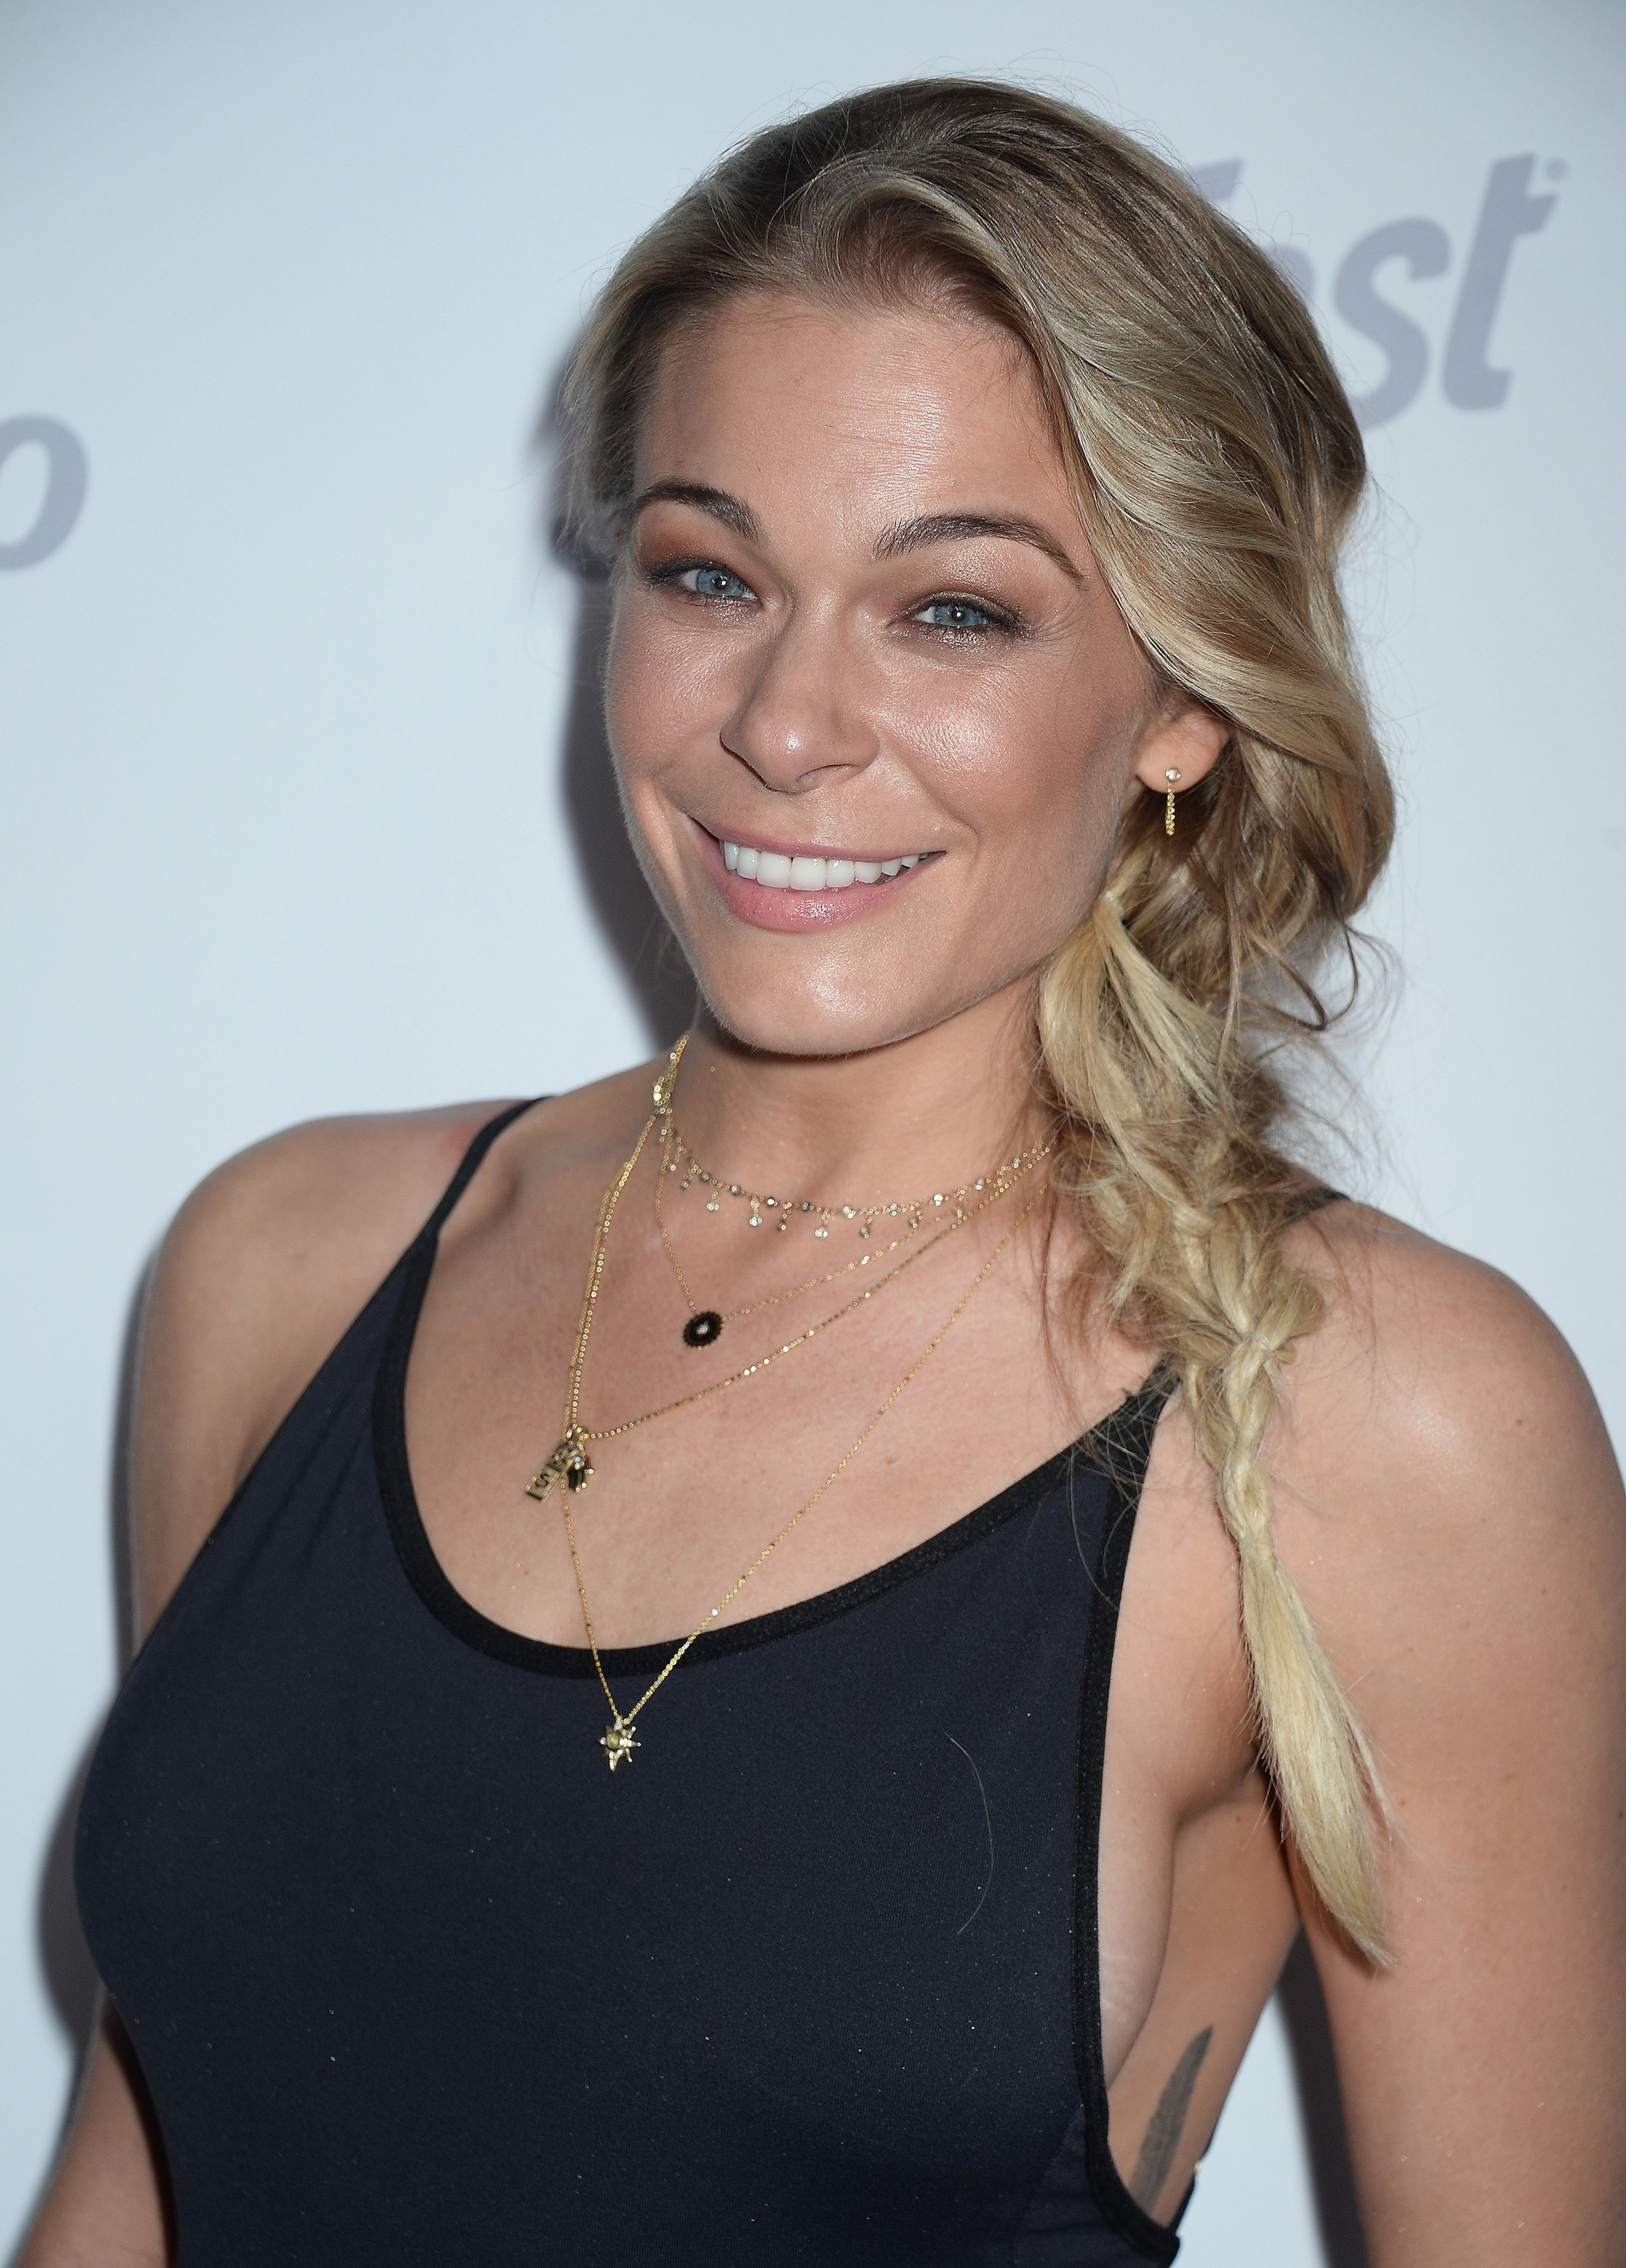 LeAnn Rimes Just Got A Lob Cut For The First Time Amp Its